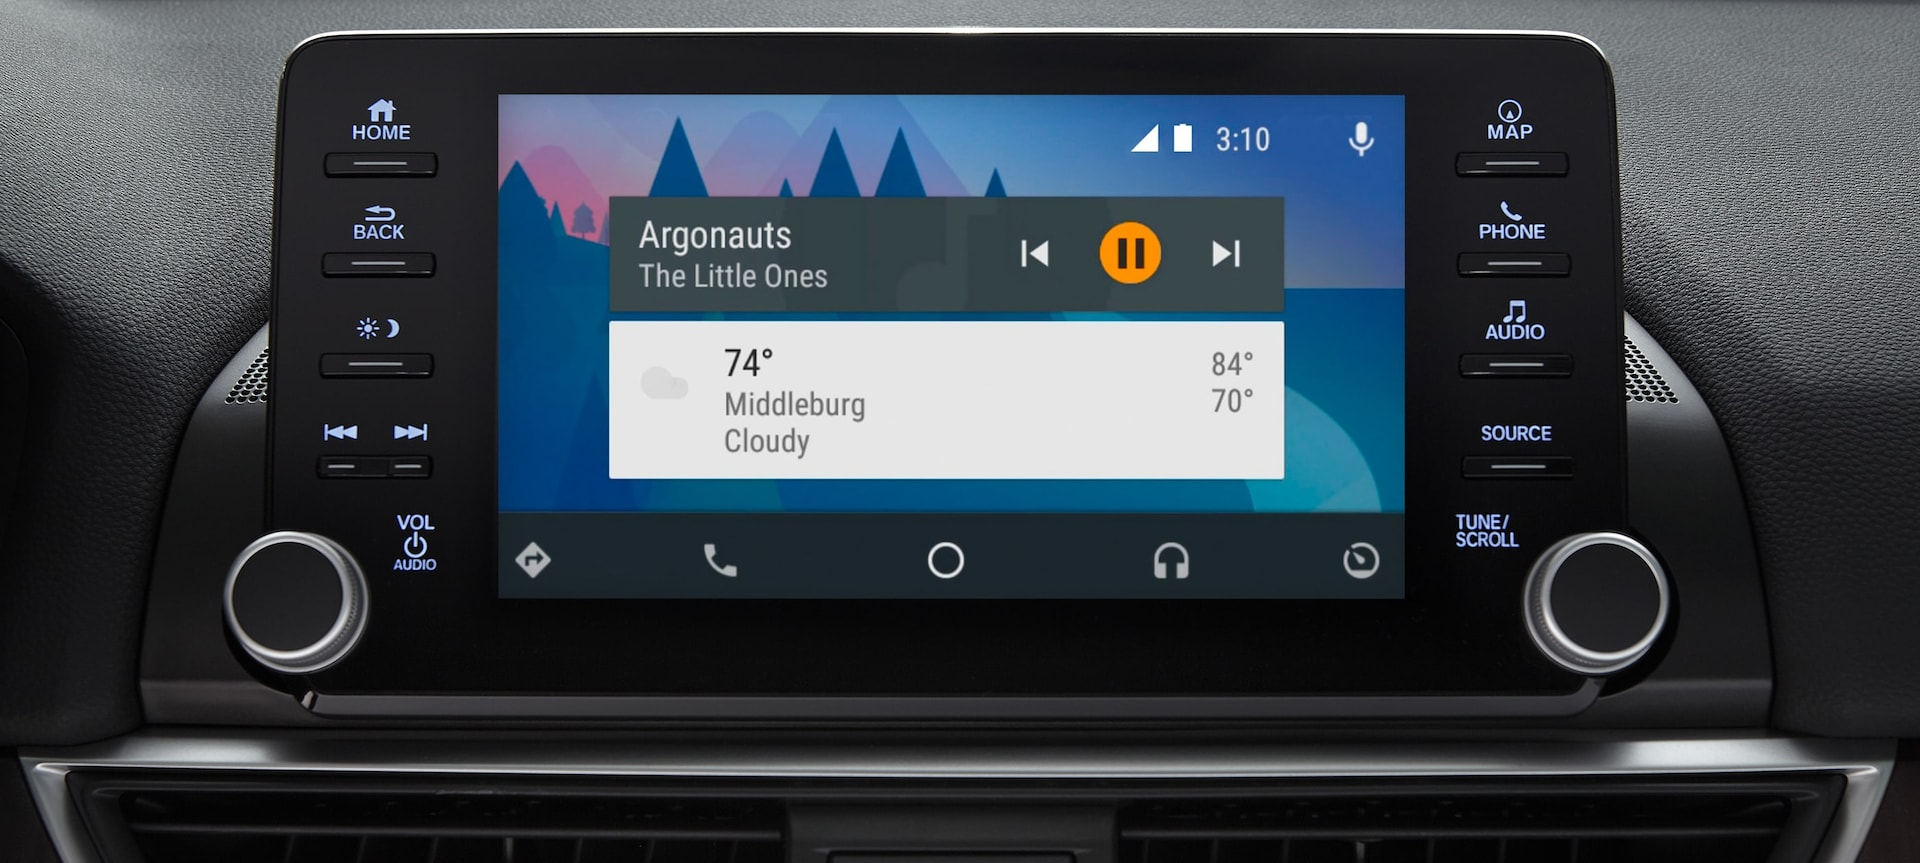 Detail of Android Auto™ display on touch-screen in the 2019 Honda Accord.